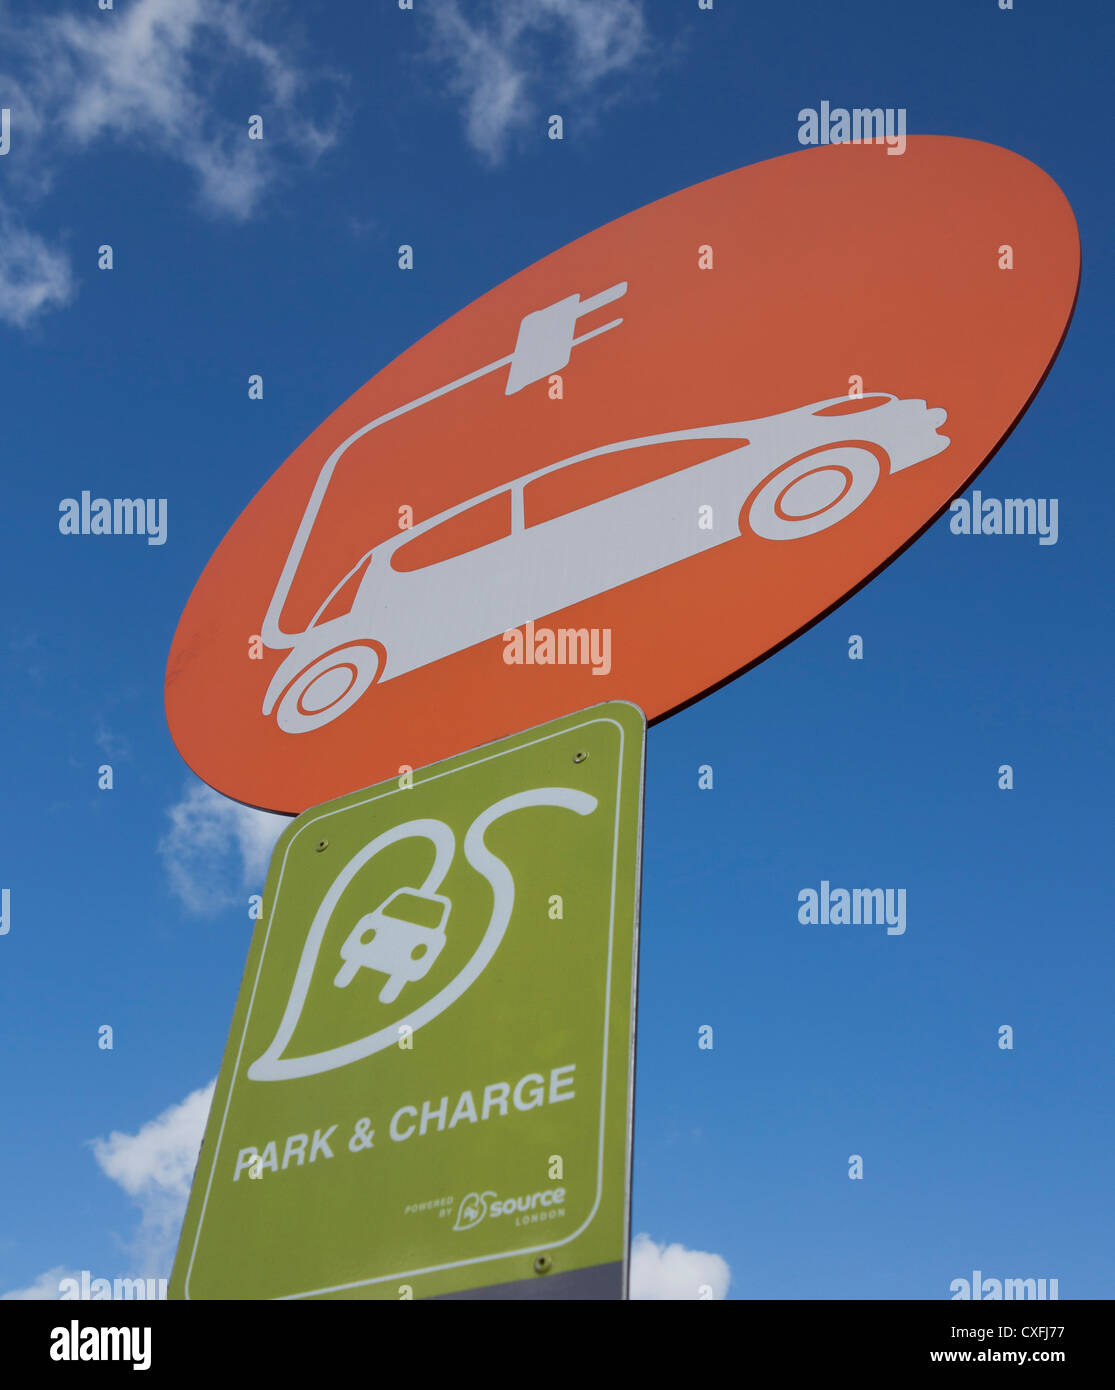 Park and charge new environmental green scheme for electric cars at supermarket car park in the UK - Stock Image